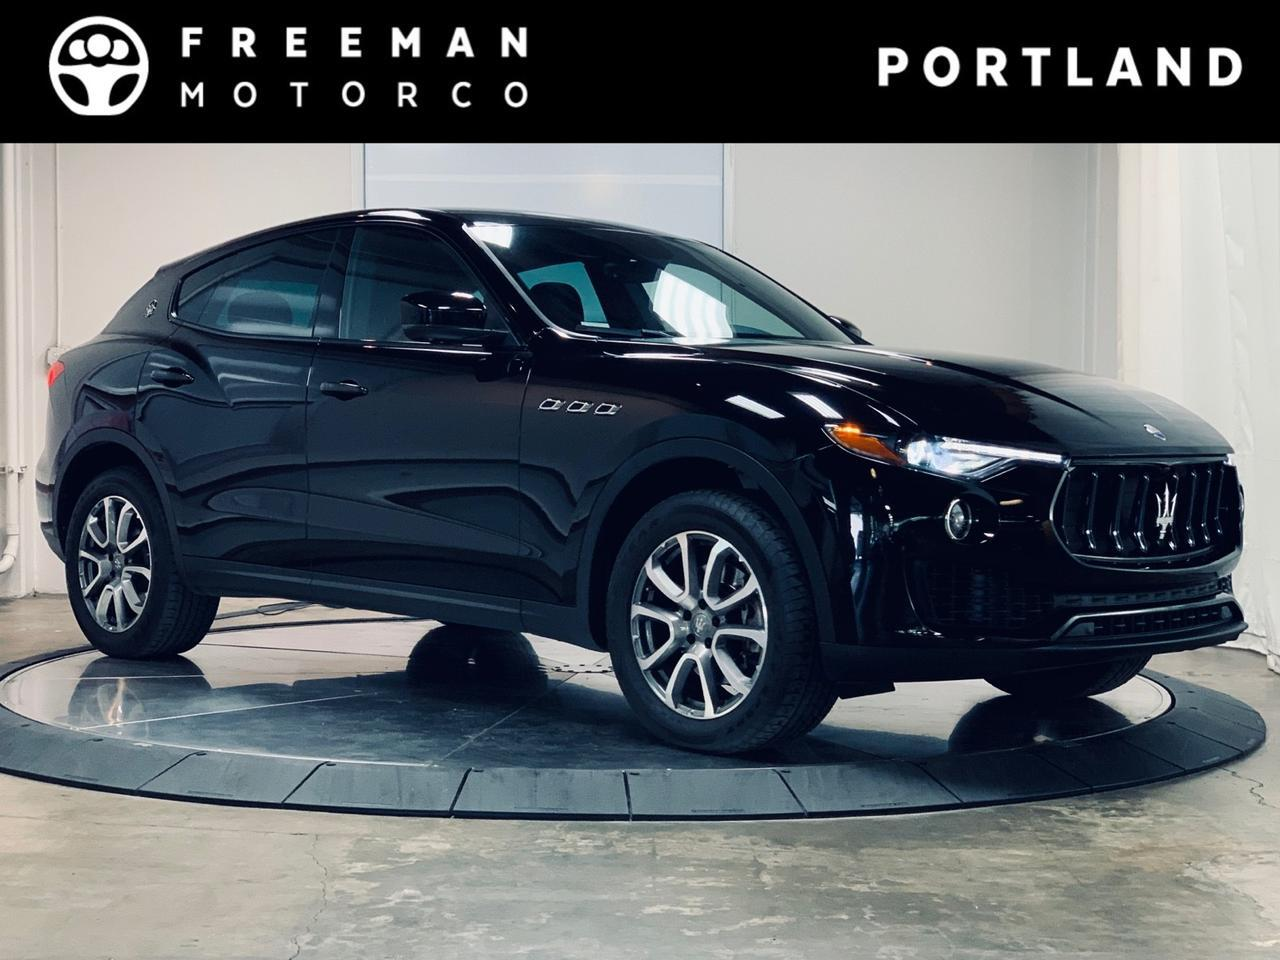 2018 Maserati Levante Sport Exhaust Heated Seats Adjustable Air Suspension Portland OR